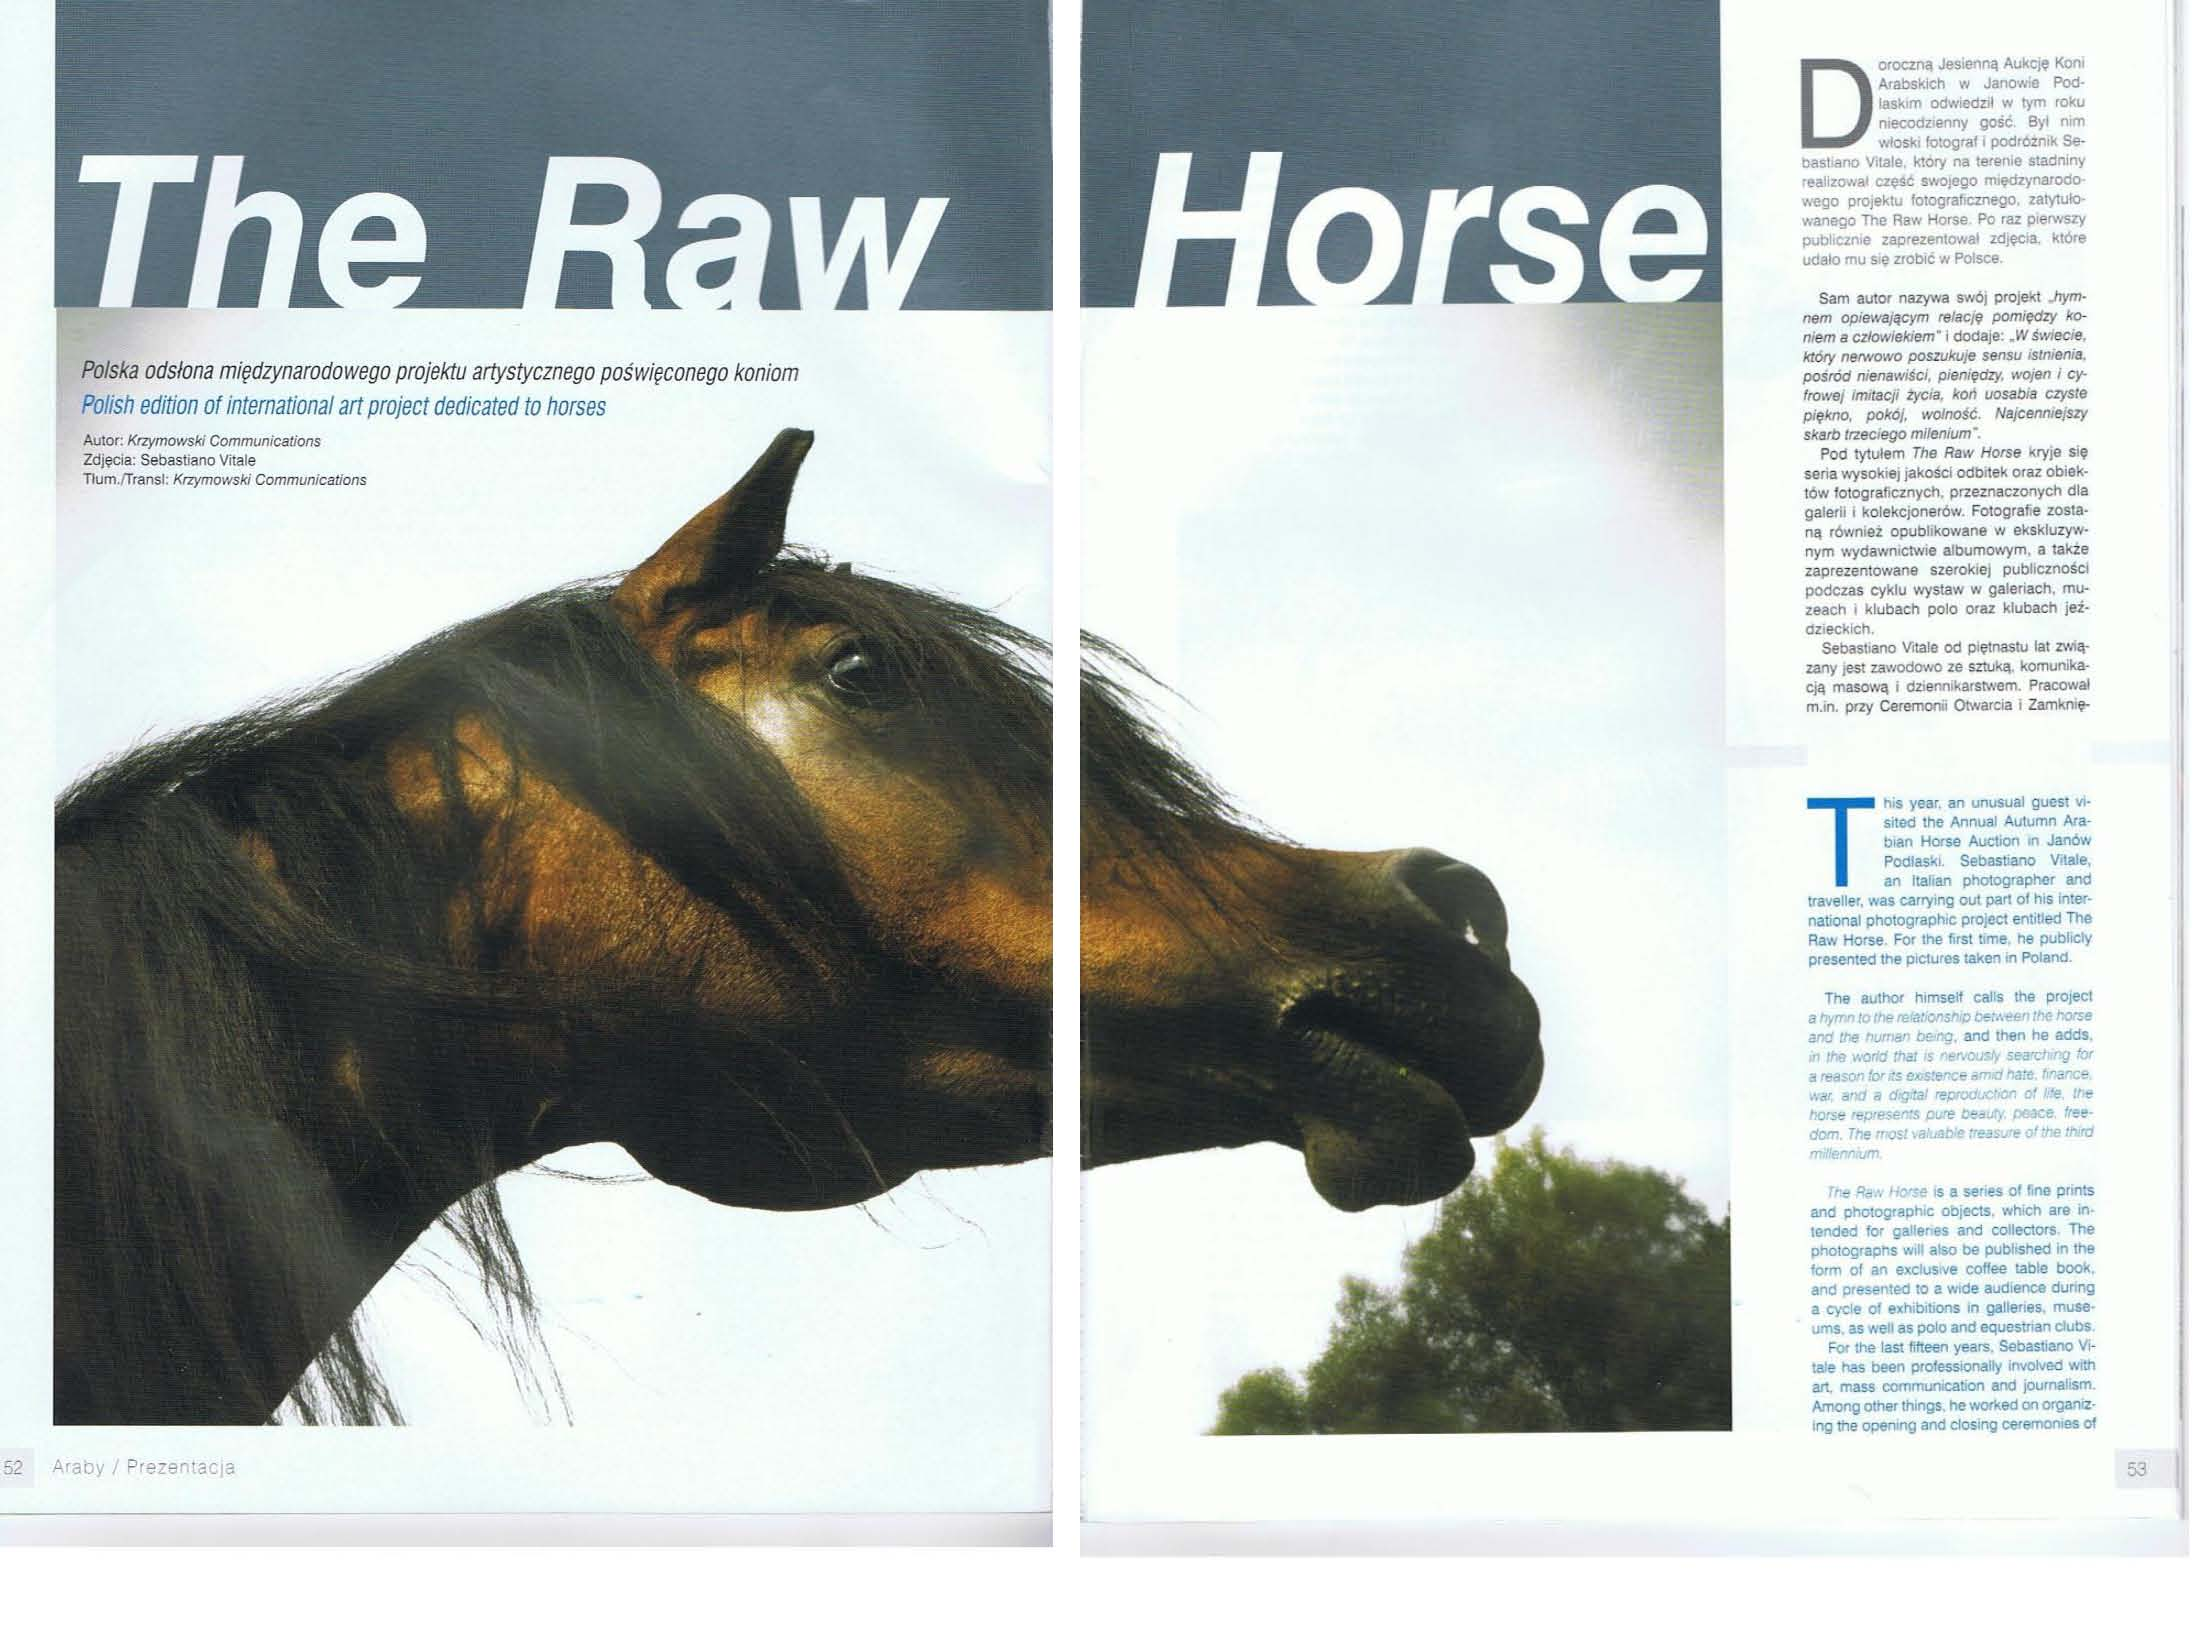 The Raw Horse